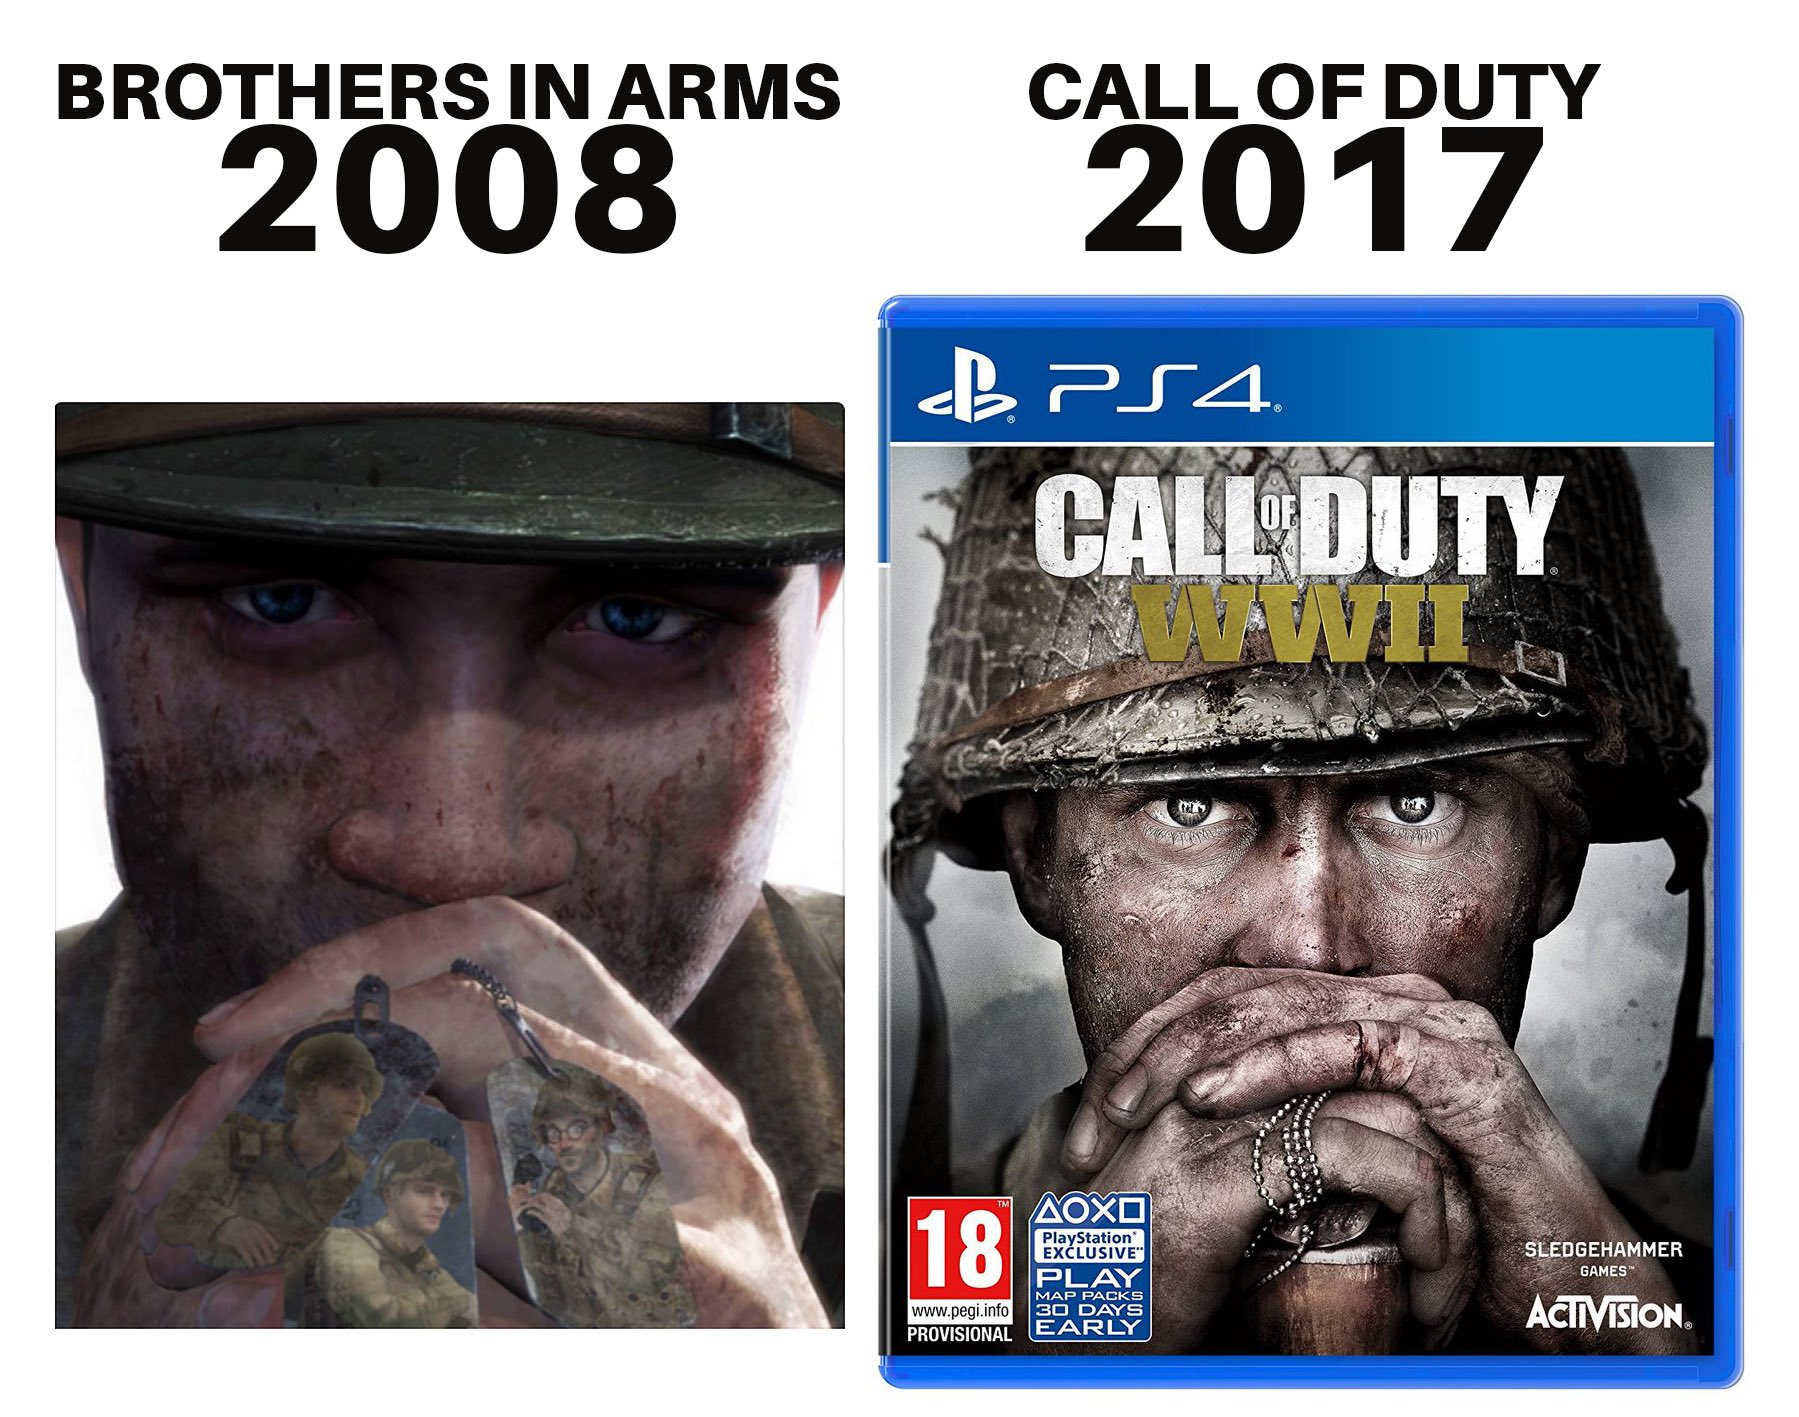 Call of Duty: WWII Art Copied